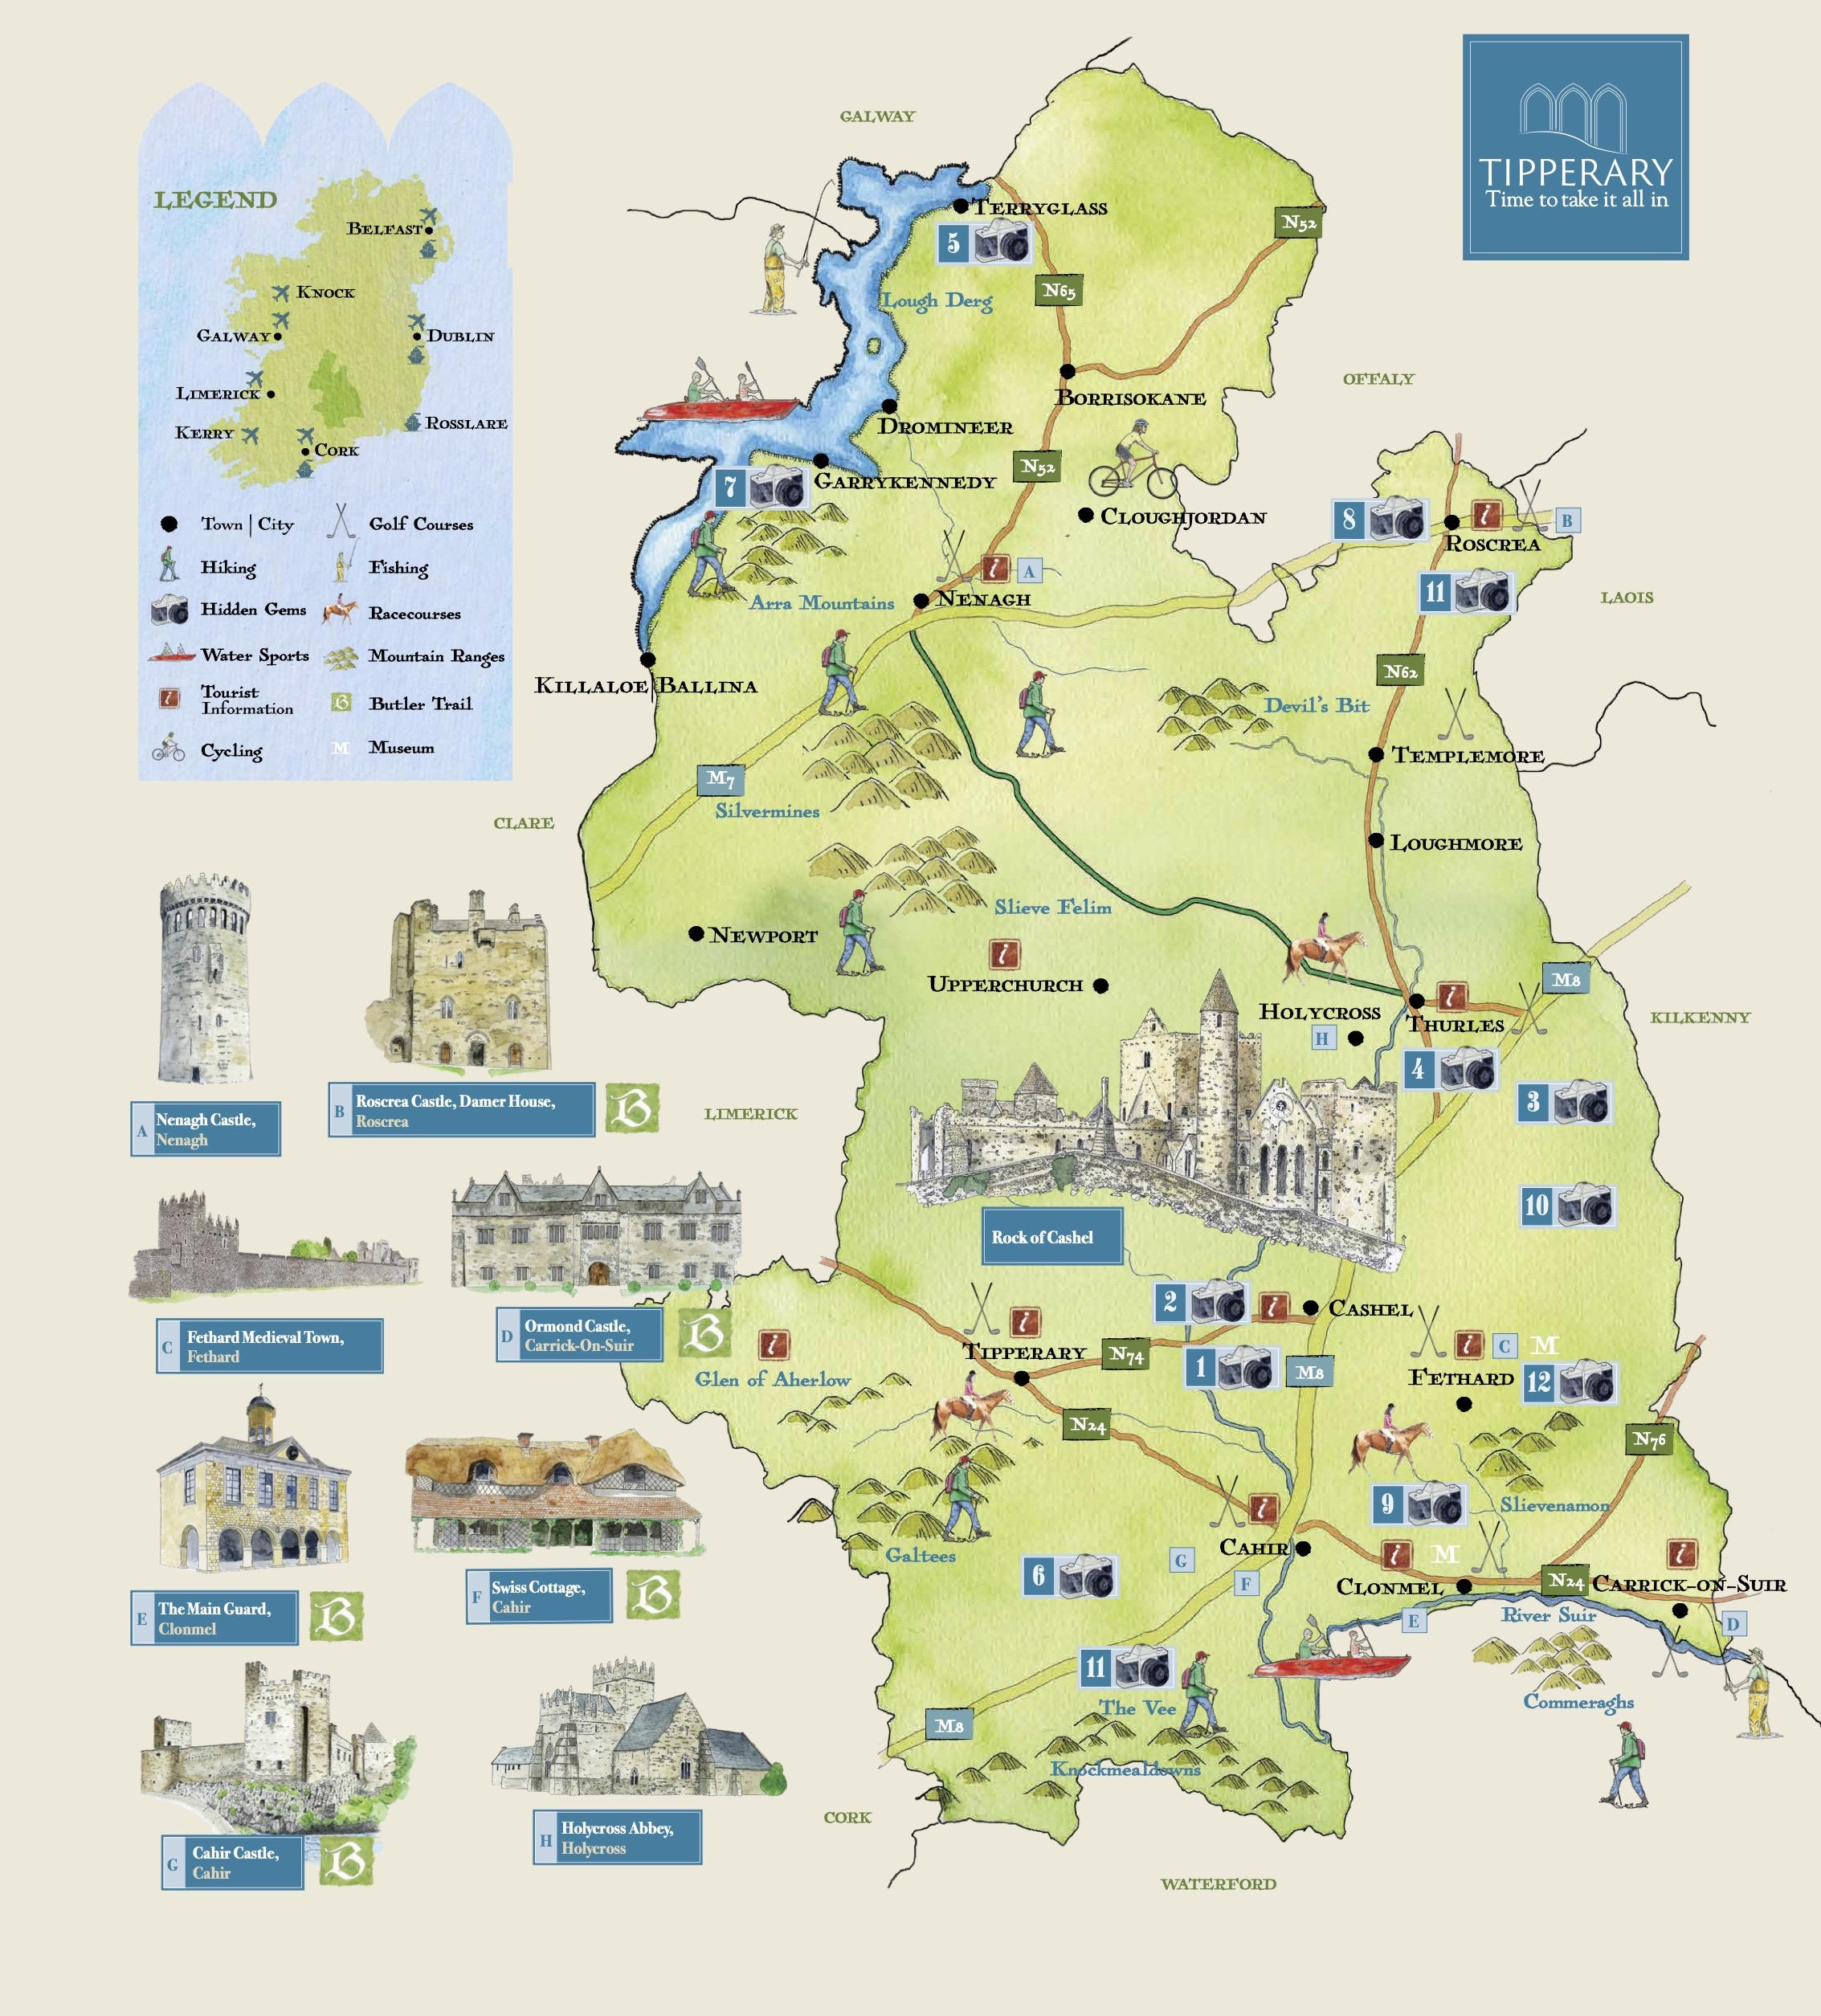 tipperary tourism map